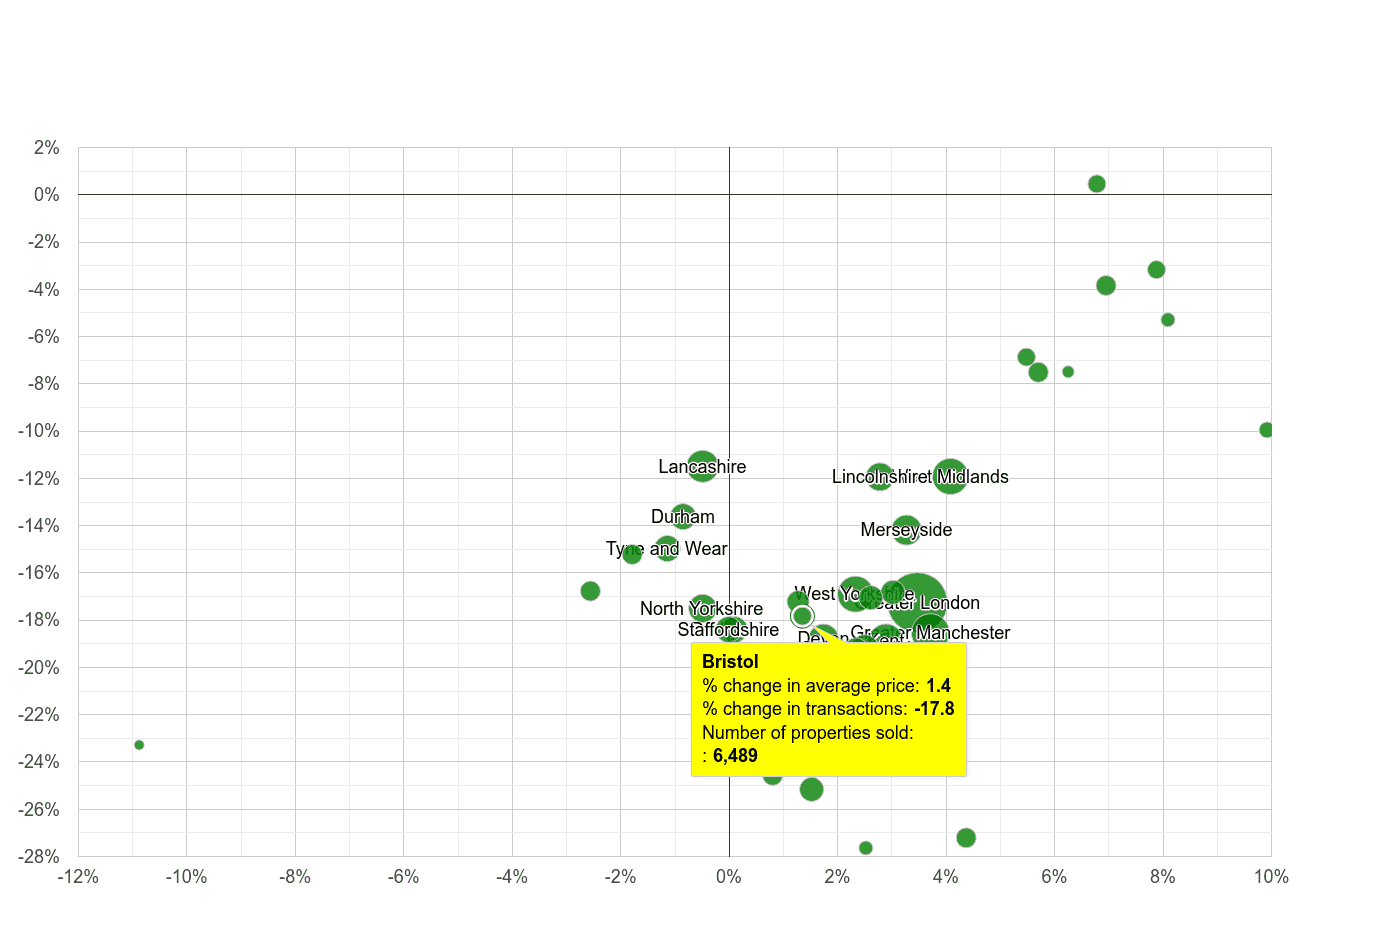 Bristol county property price and sales volume change relative to other counties